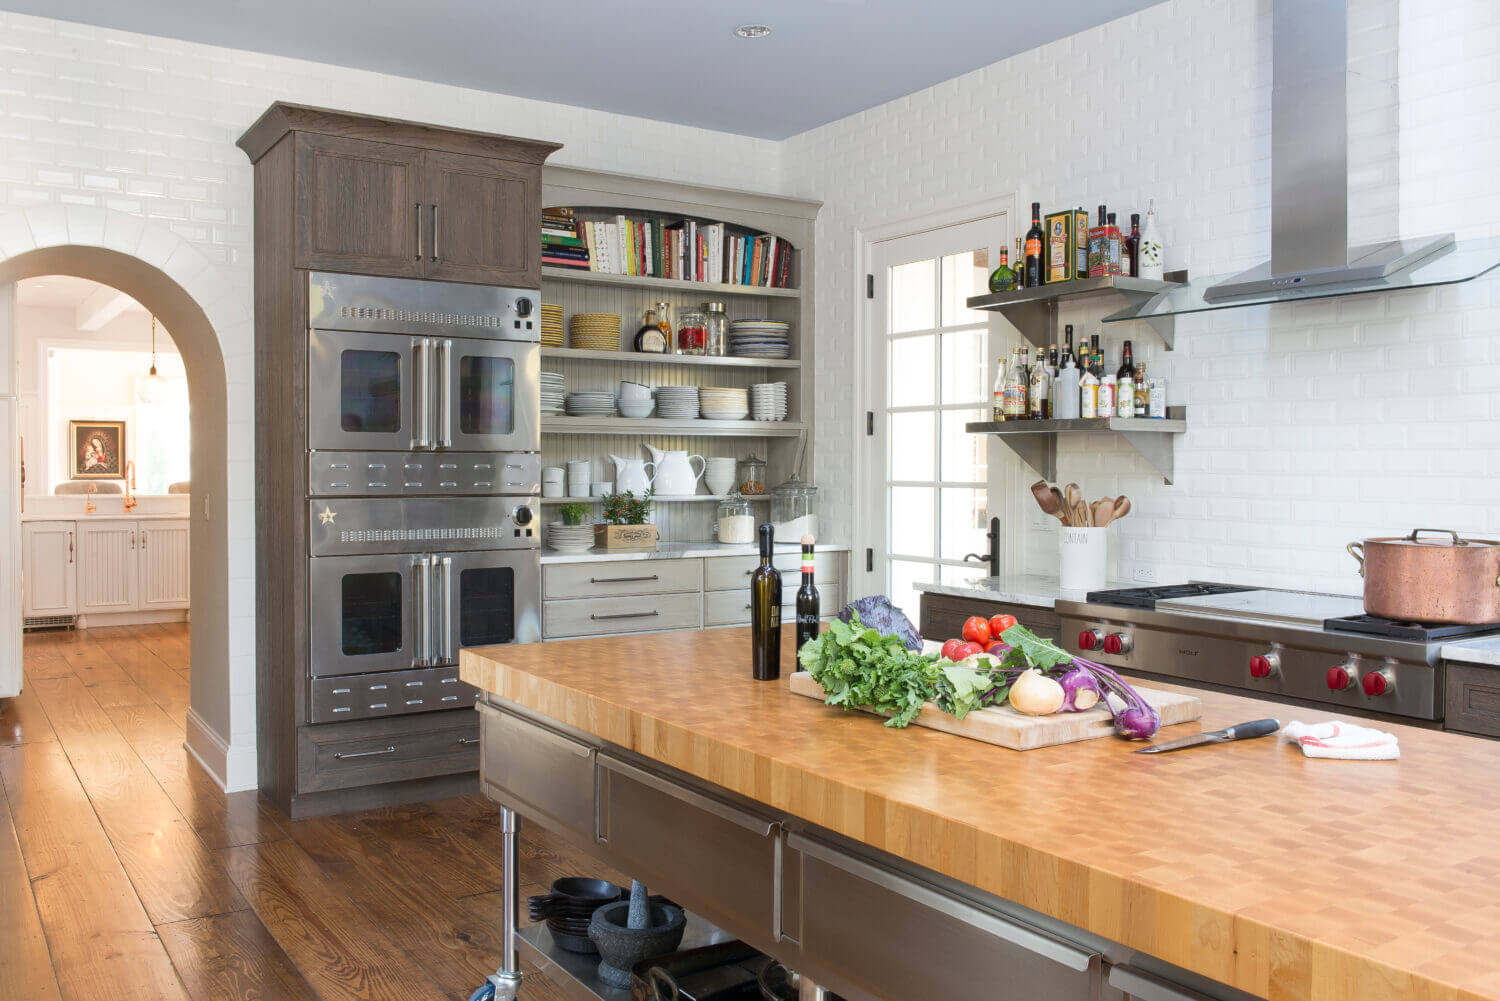 A long island with a butcher block countertop provides a large work service for food prep.